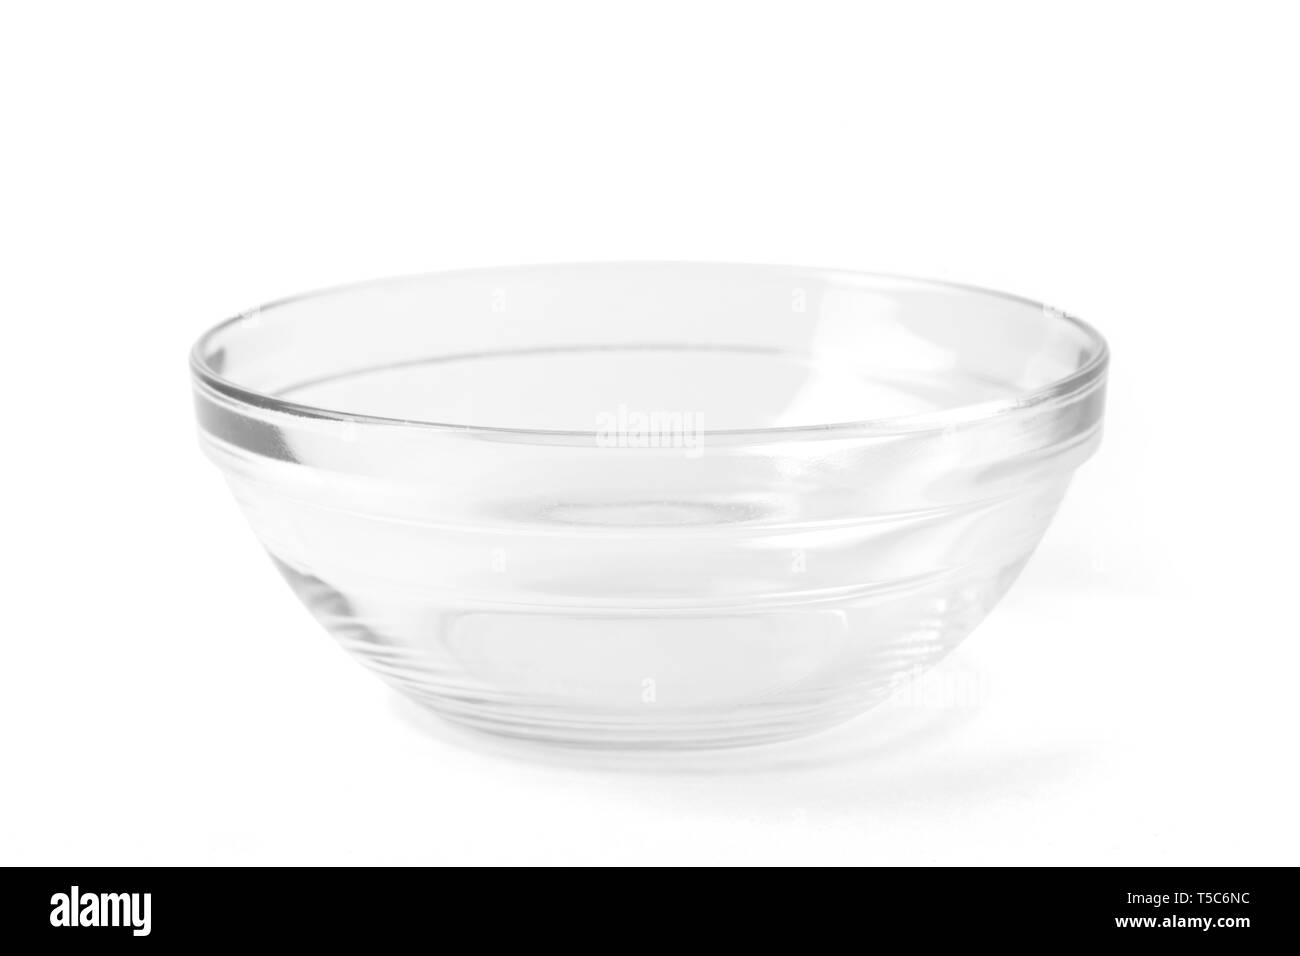 Transparent empty glass bowl for soup and salad, with a path isolated on white background. Stock Photo